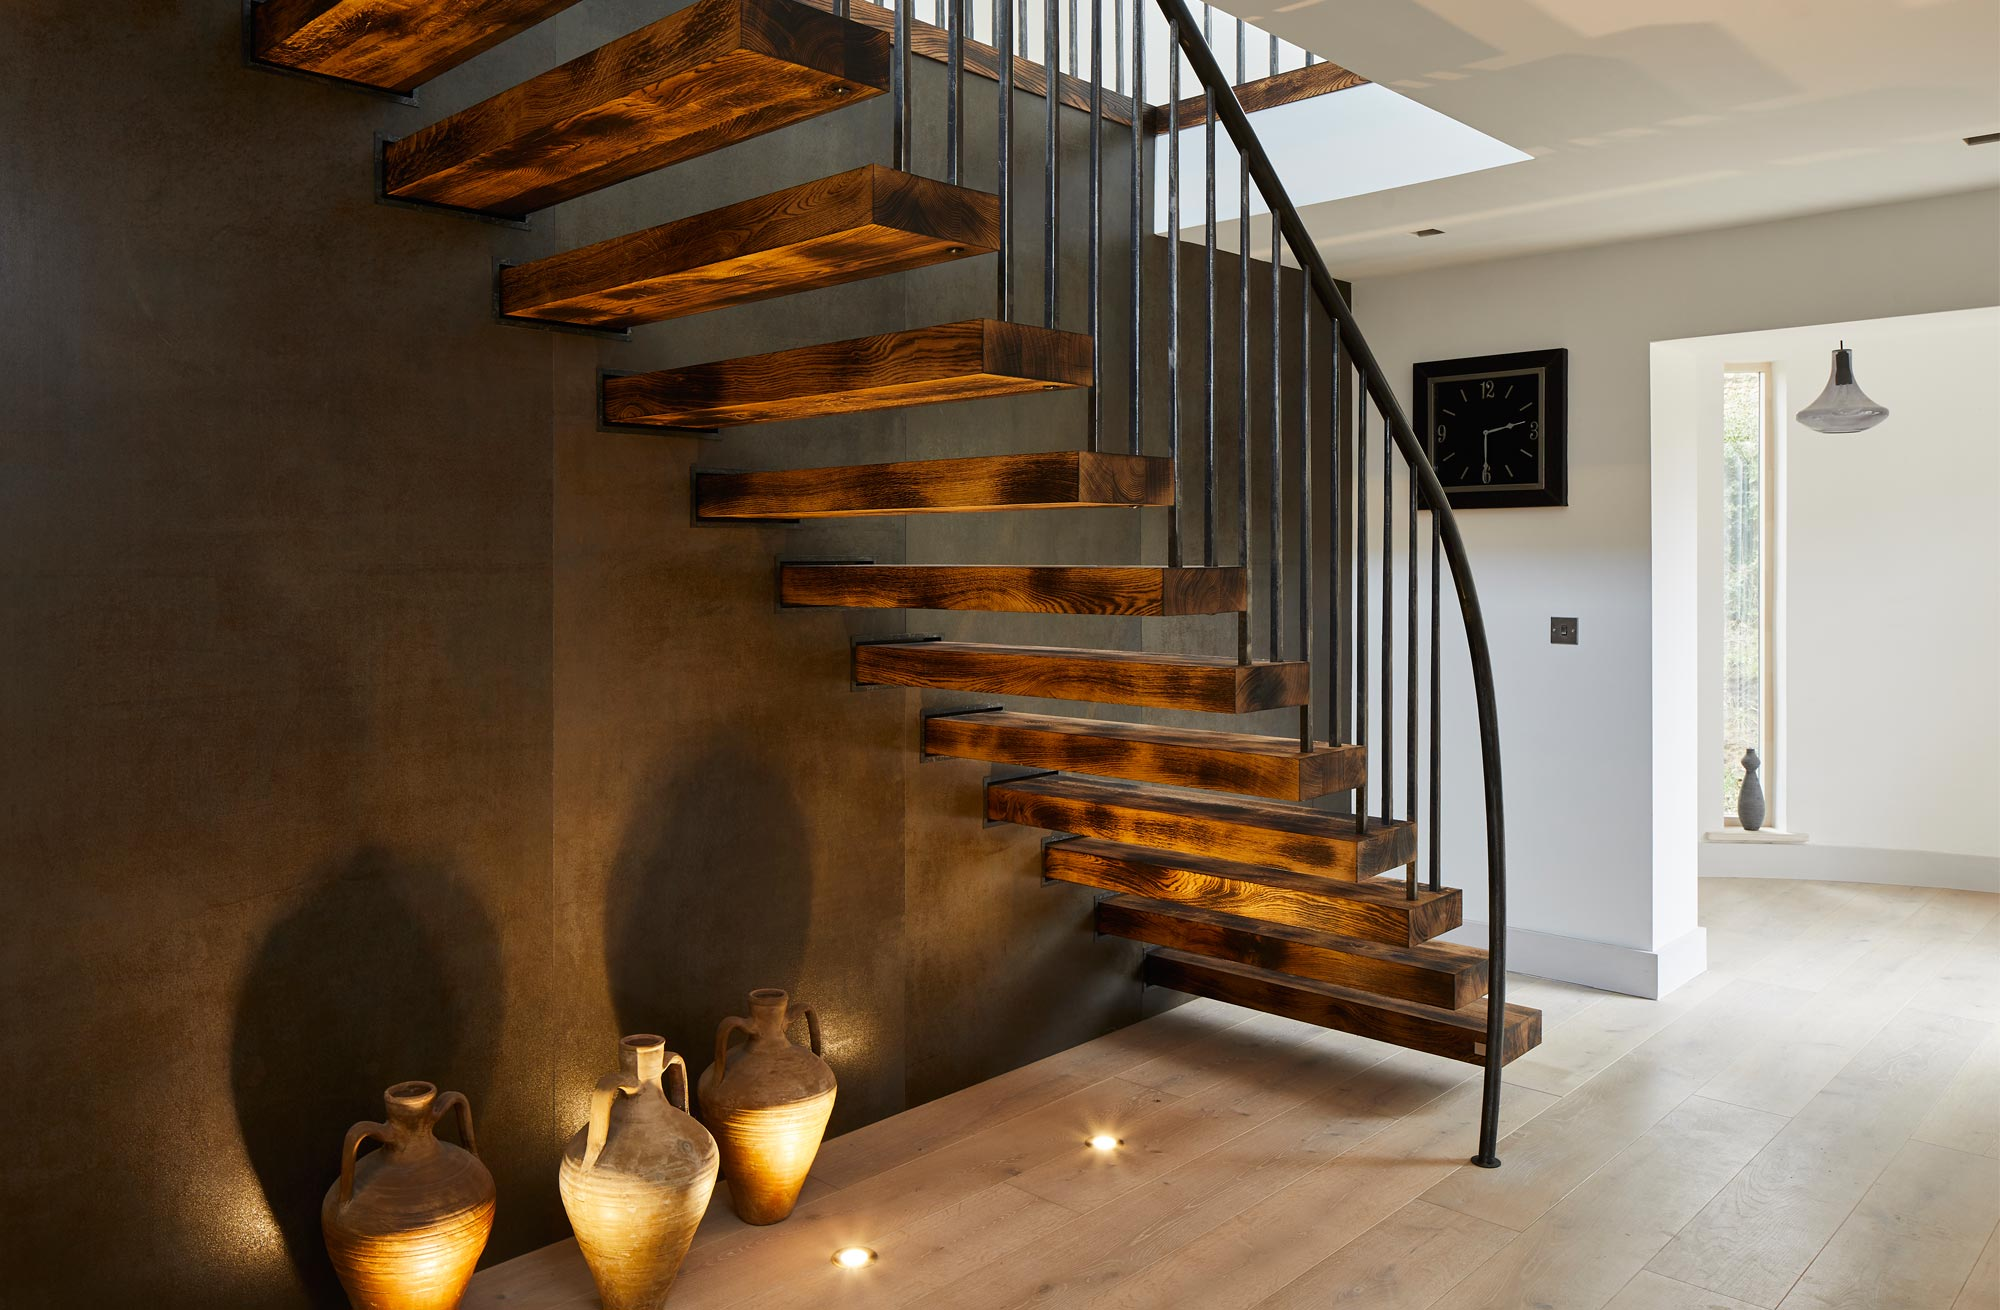 Uplighters under a staircase feature lights